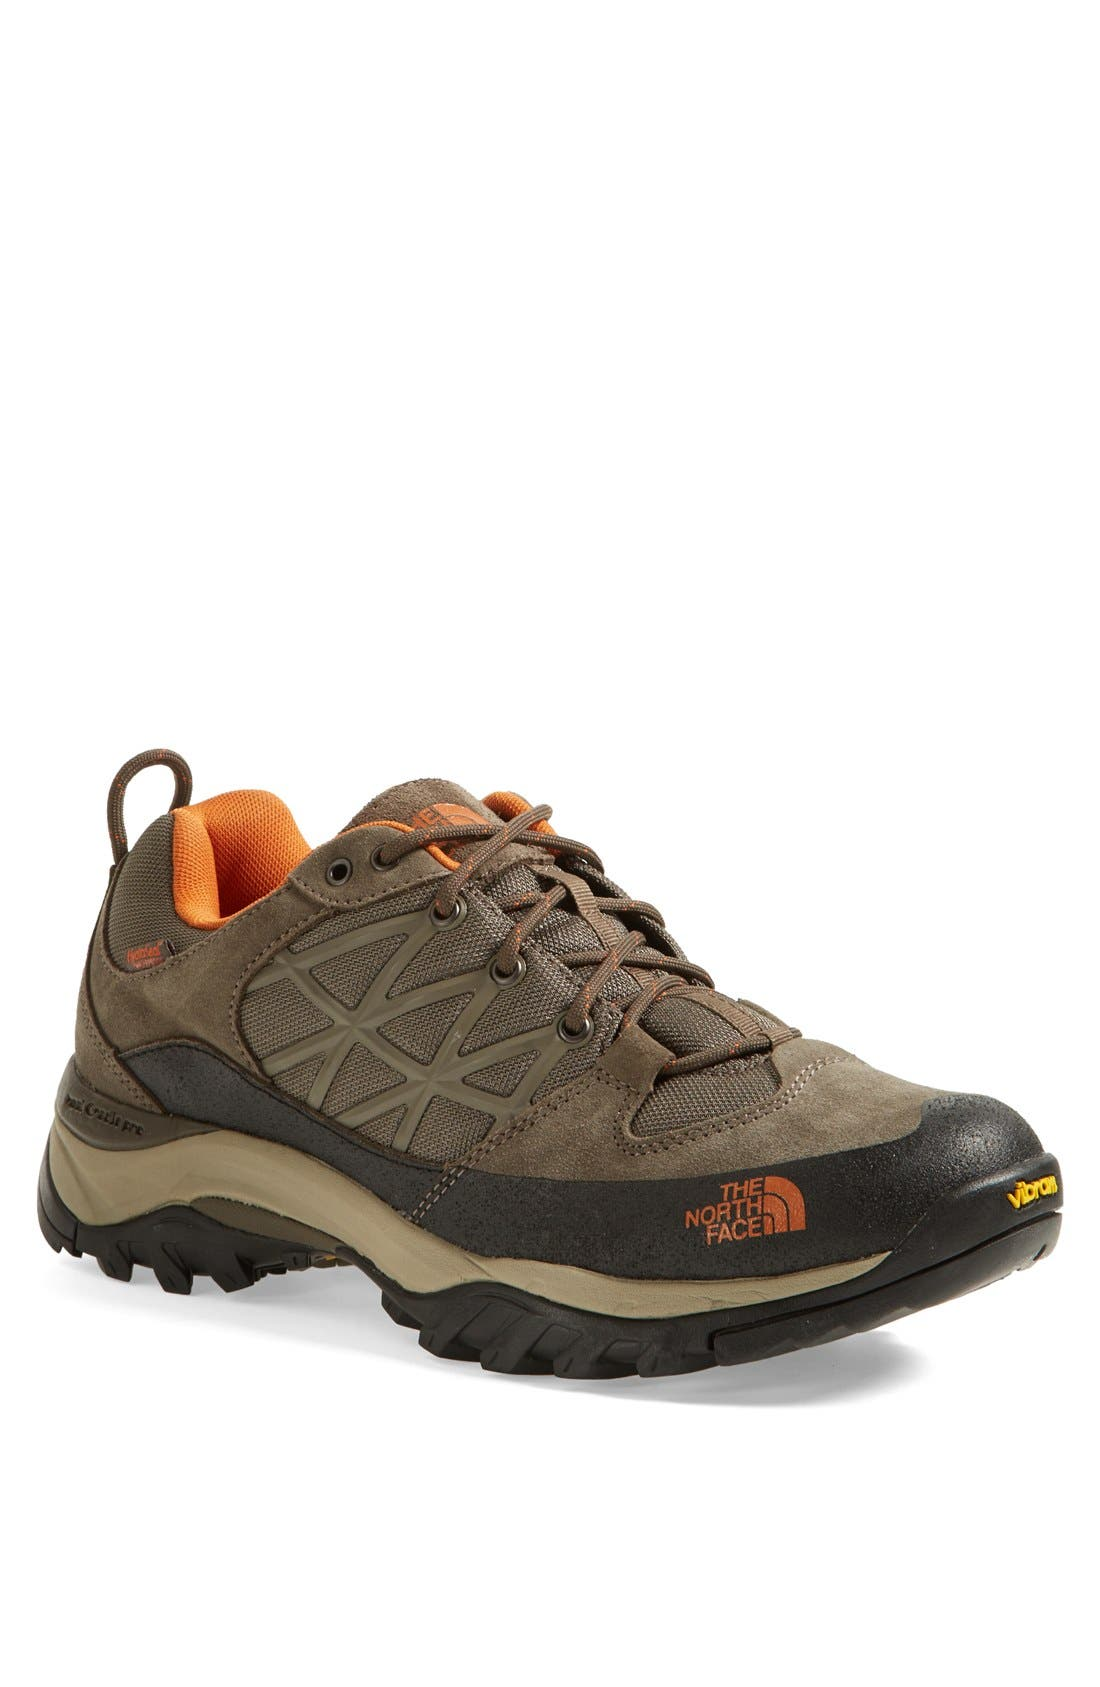 Main Image - The North Face 'Storm WP' Hiking Shoe (Men)